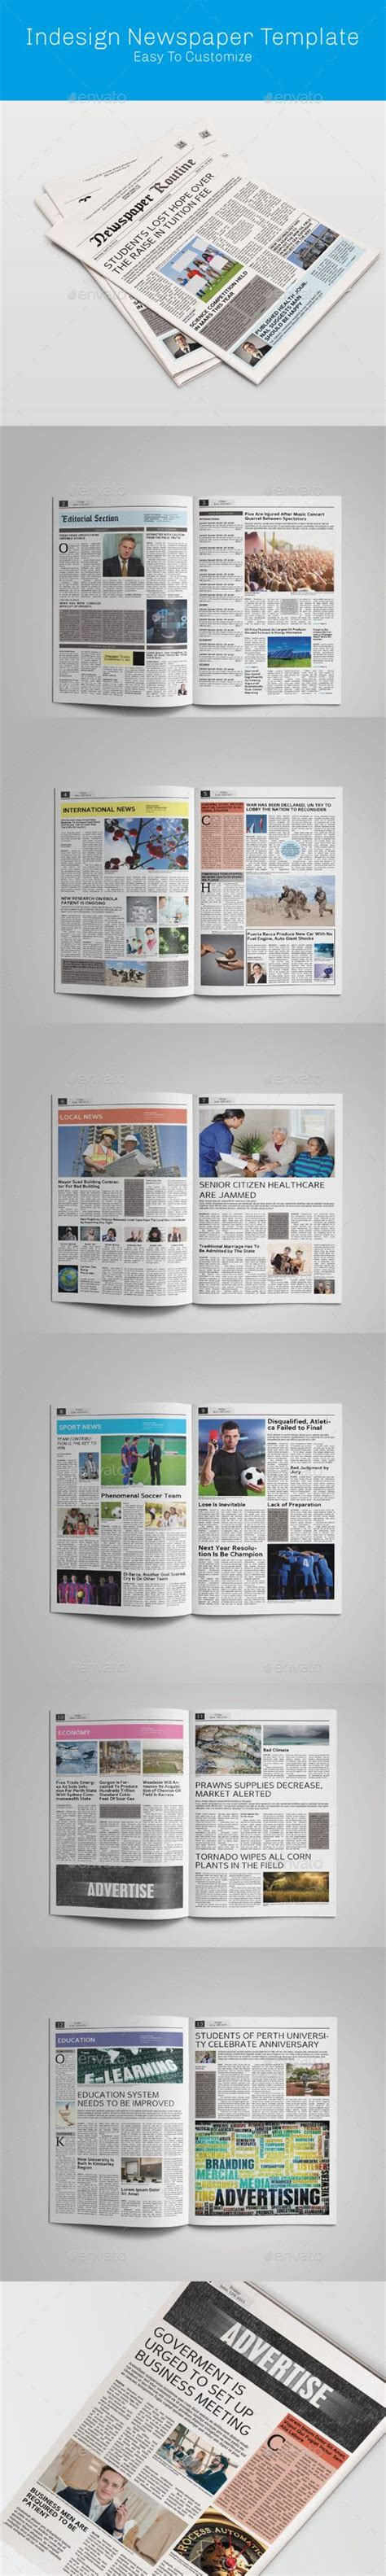 tabloid layout design inspiration templates newspaper and design on pinterest